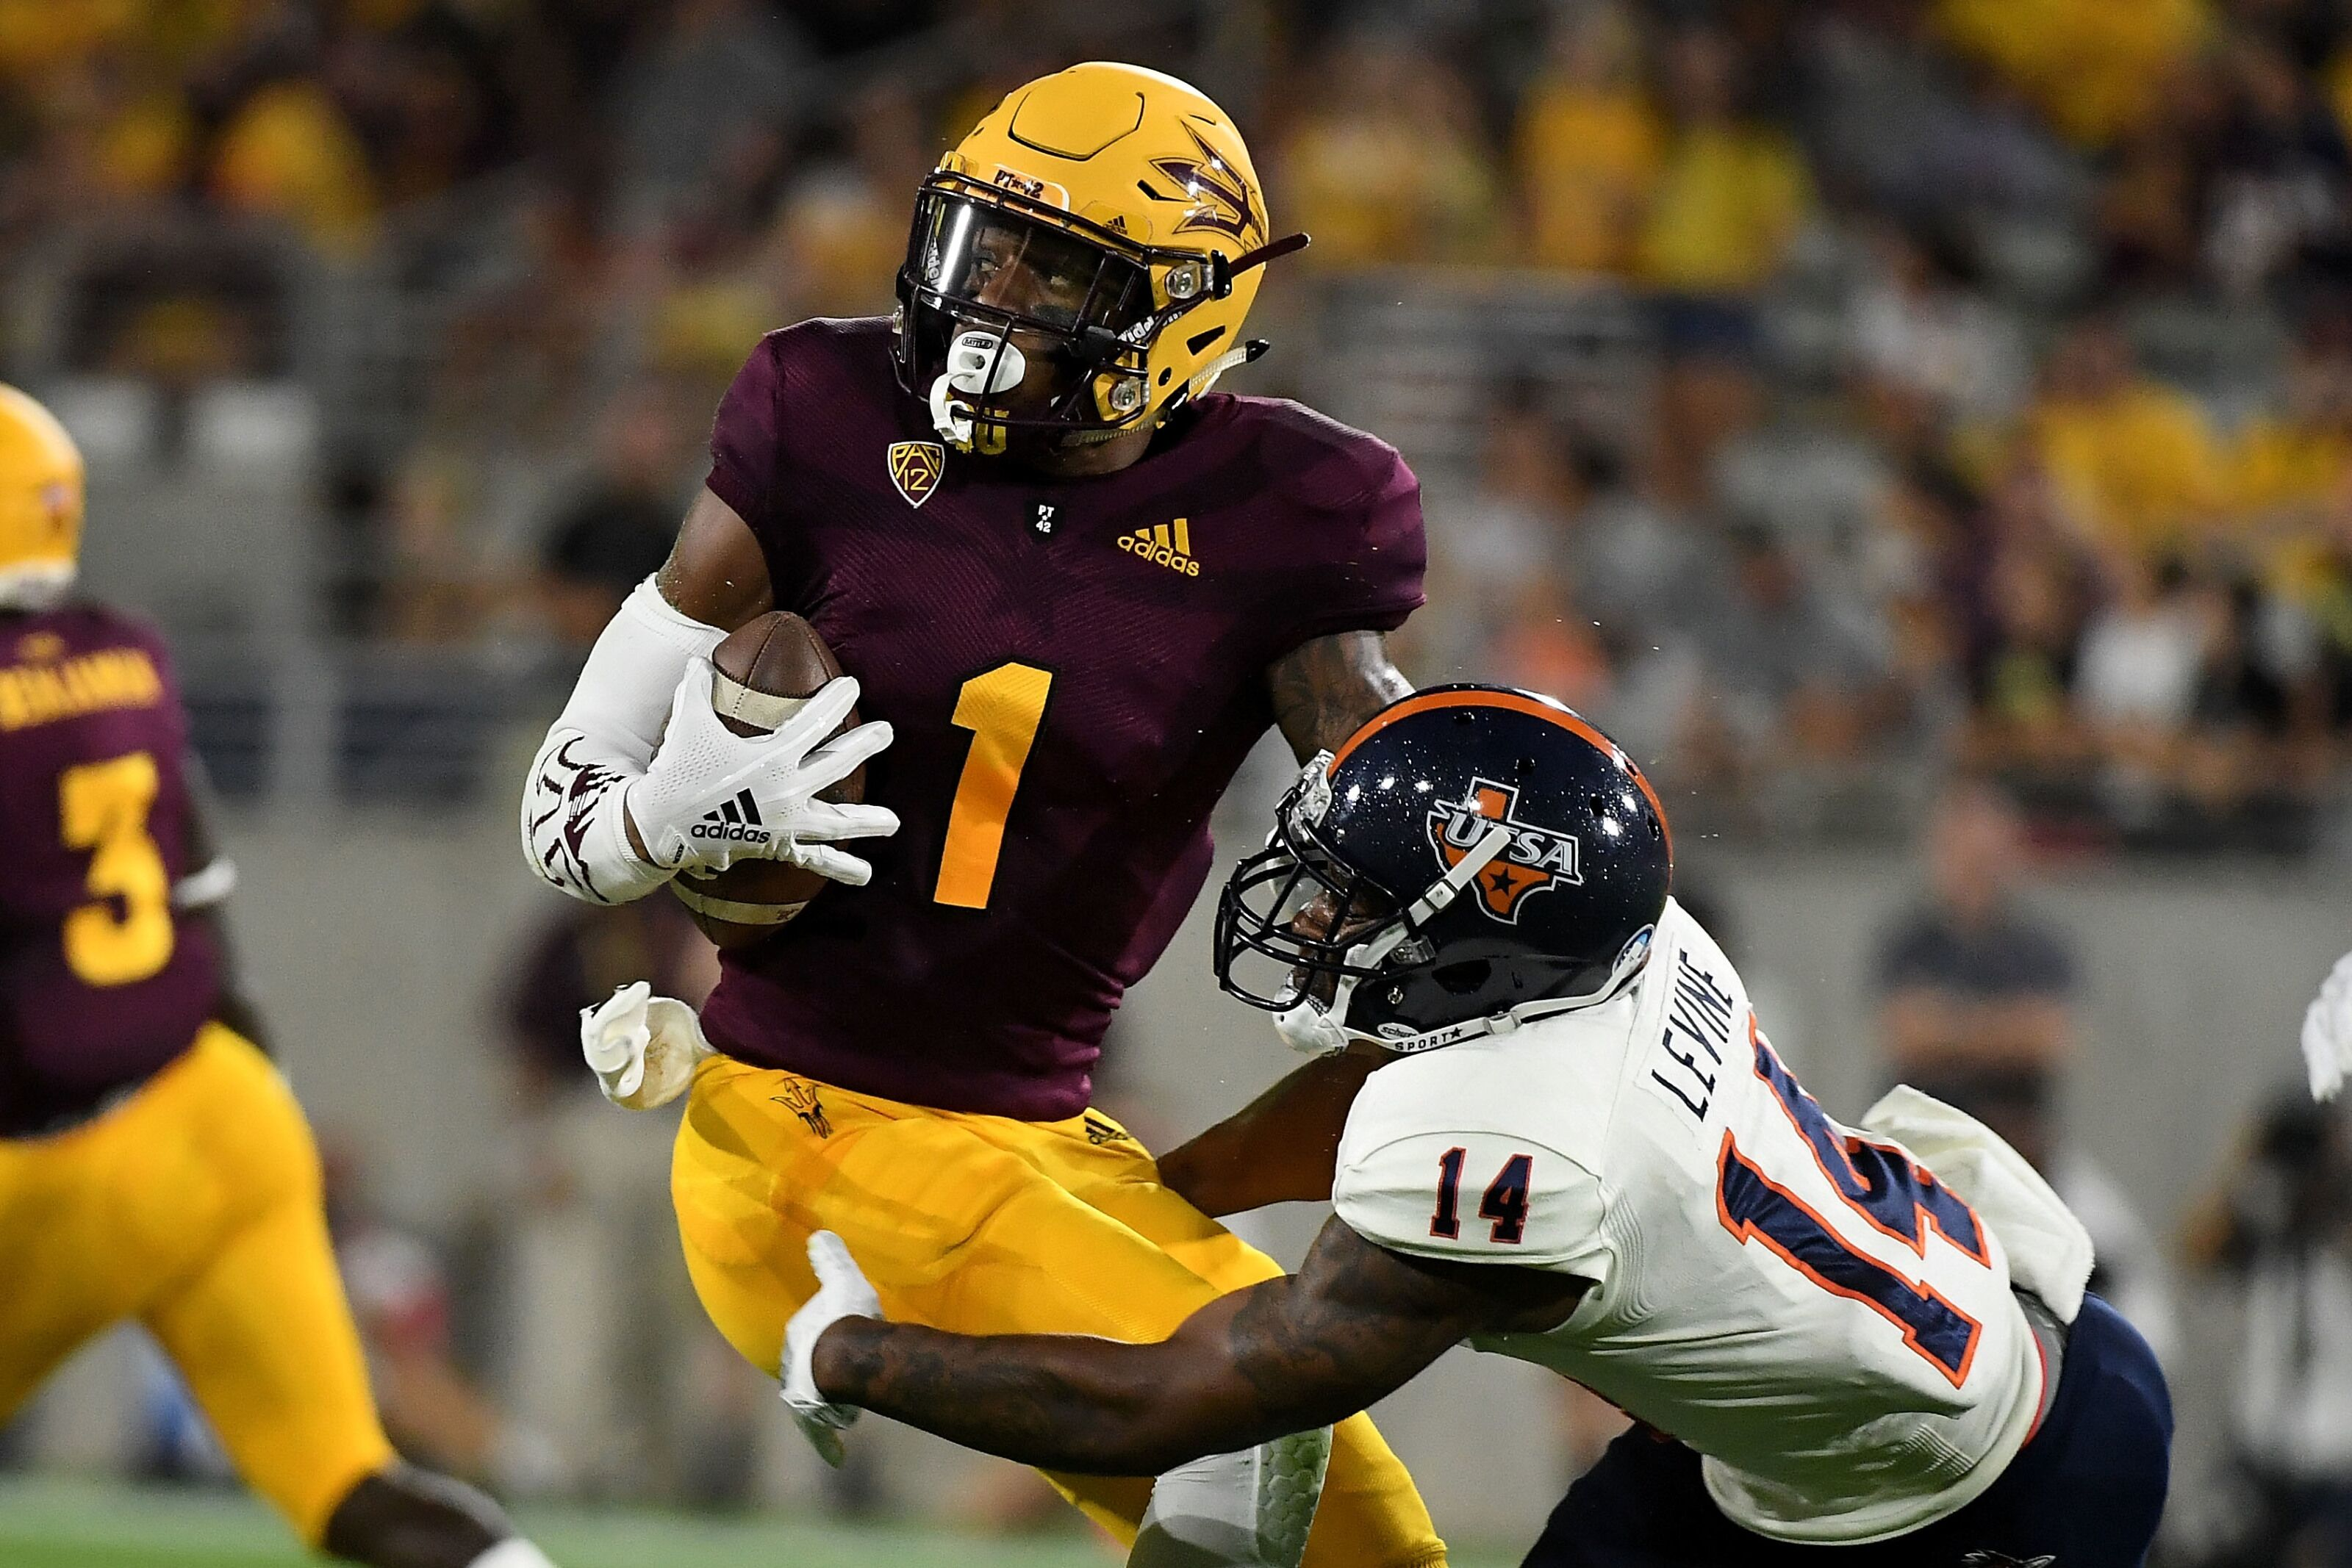 2019 NFL Draft Scouting Report: N'Keal Harry, Arizona State